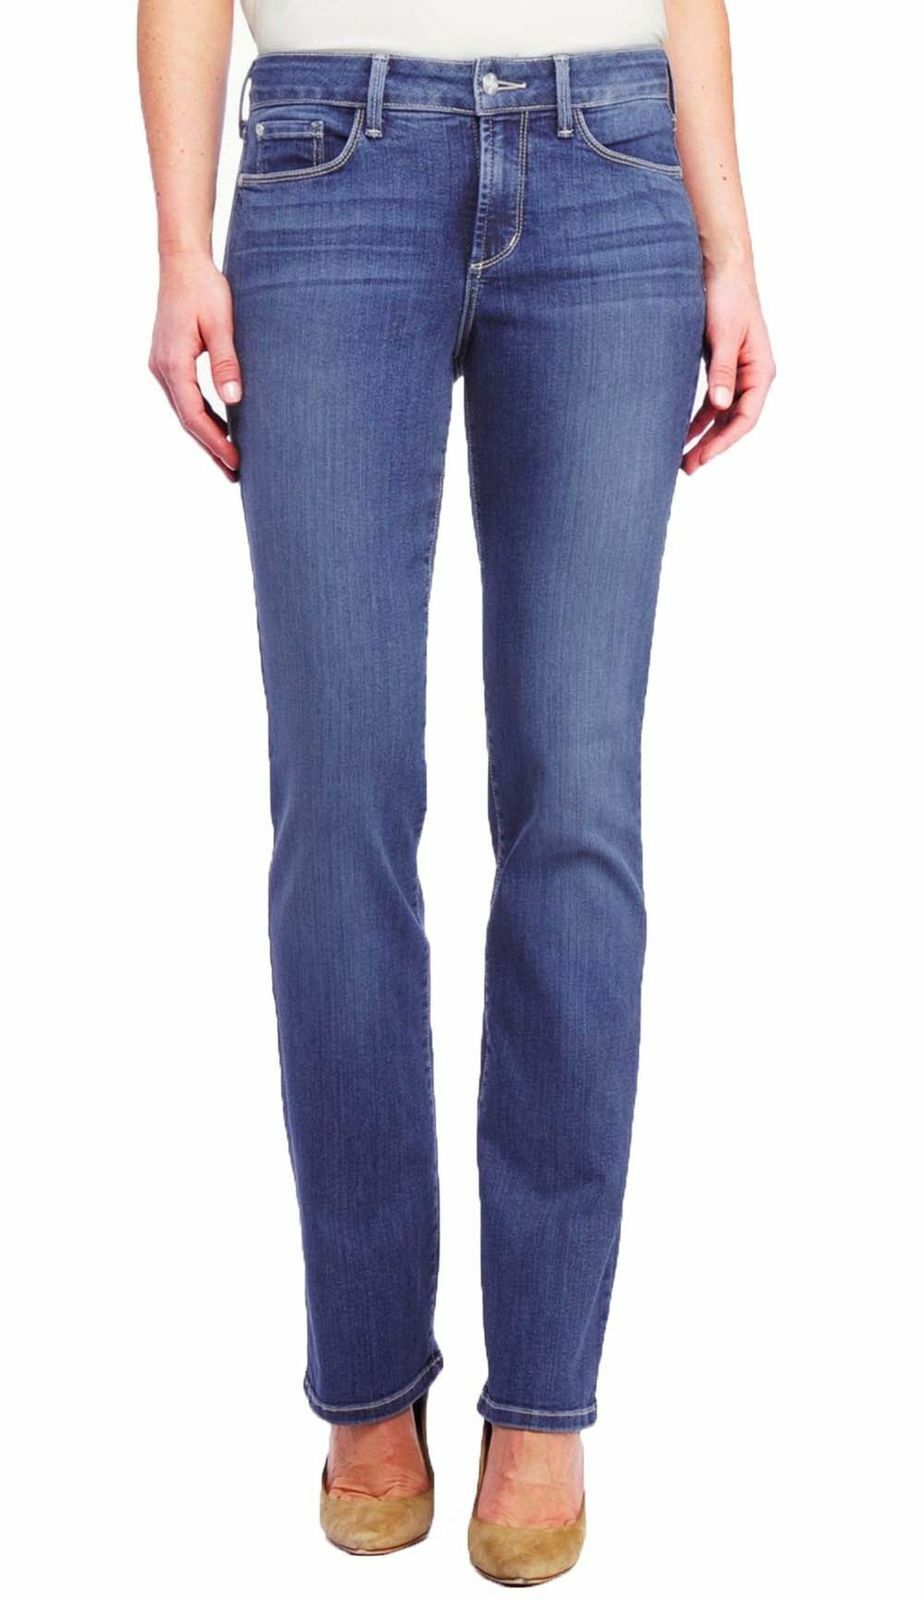 NYDJ Not Your Daughters Jeans Marilyn Straight Leg in Heyburn - Size 8 Petite